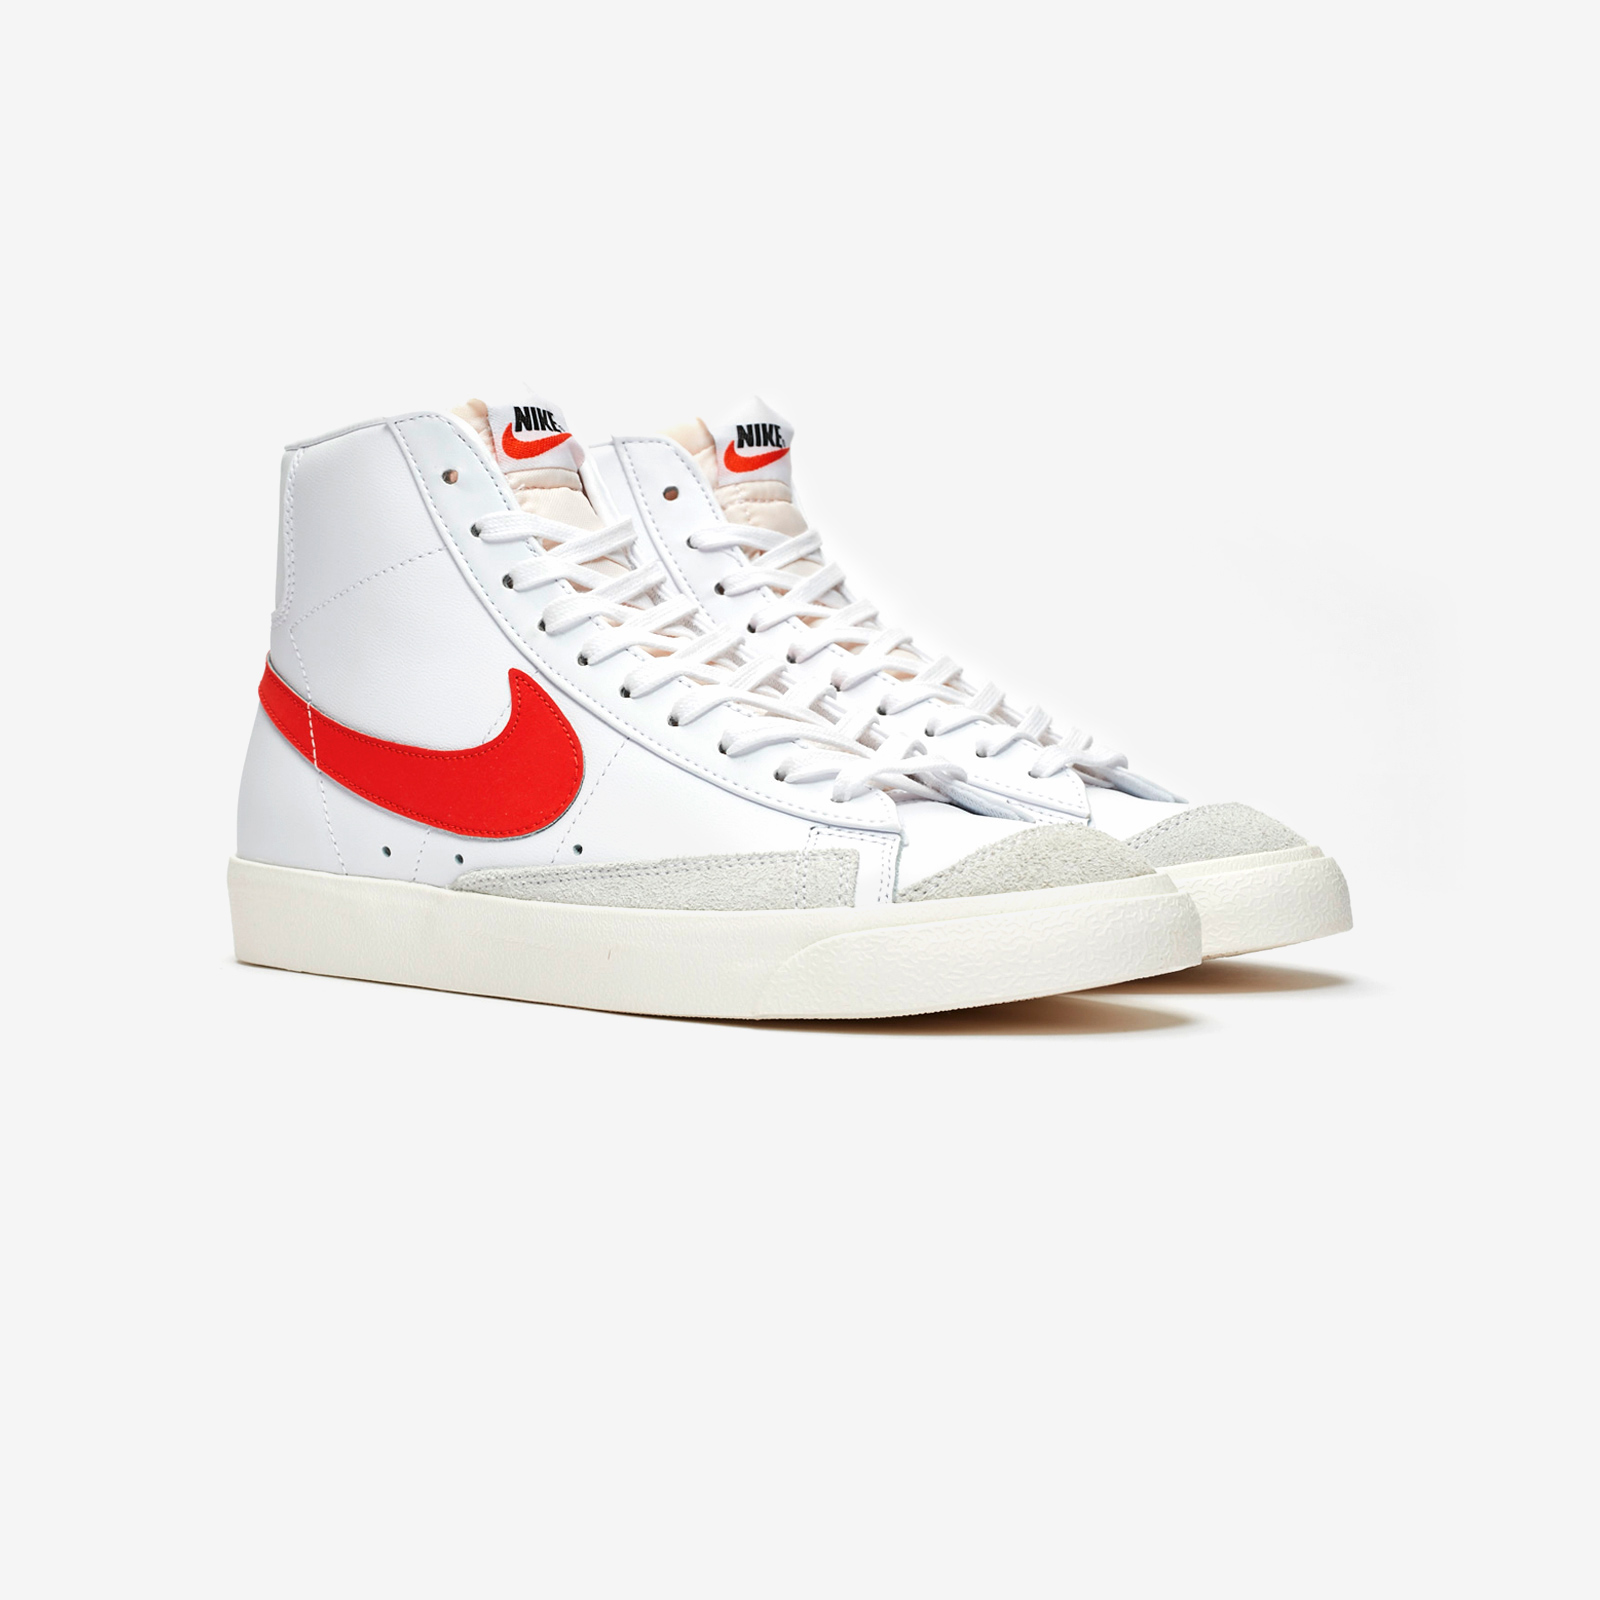 reputable site great prices later Nike Blazer Mid 77 Vintage - Bq6806-600 - Sneakersnstuff I ...